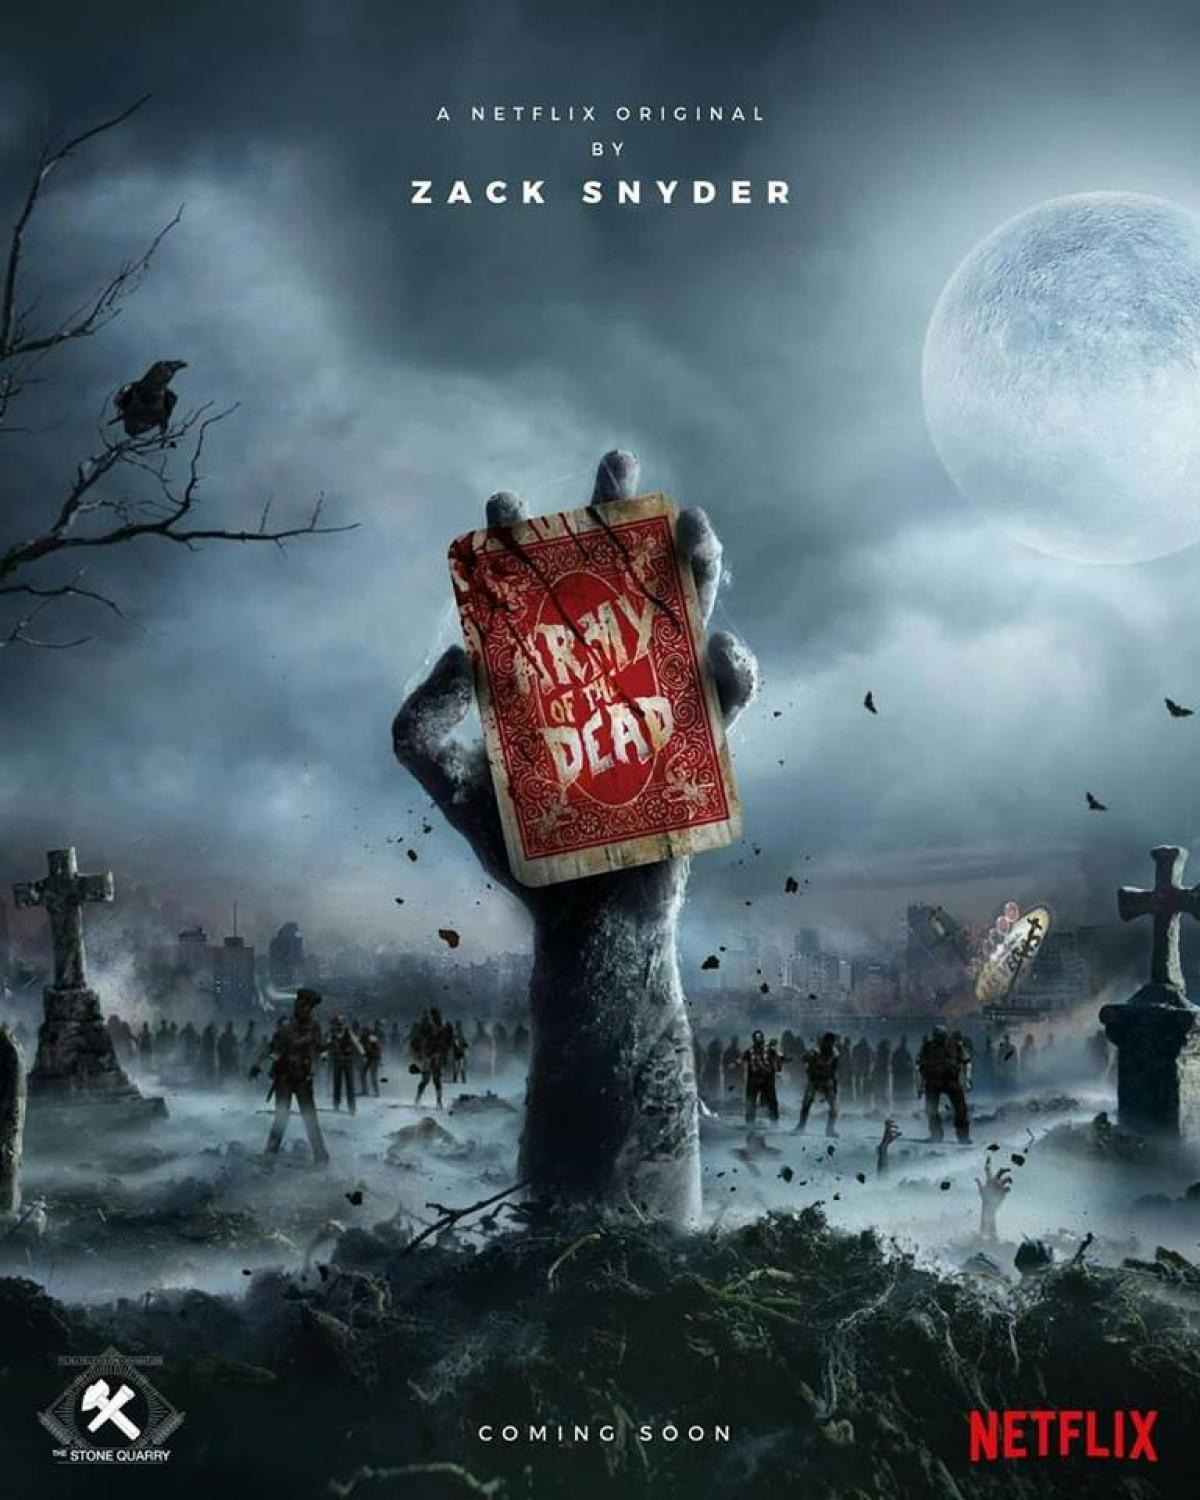 army-dead-poster